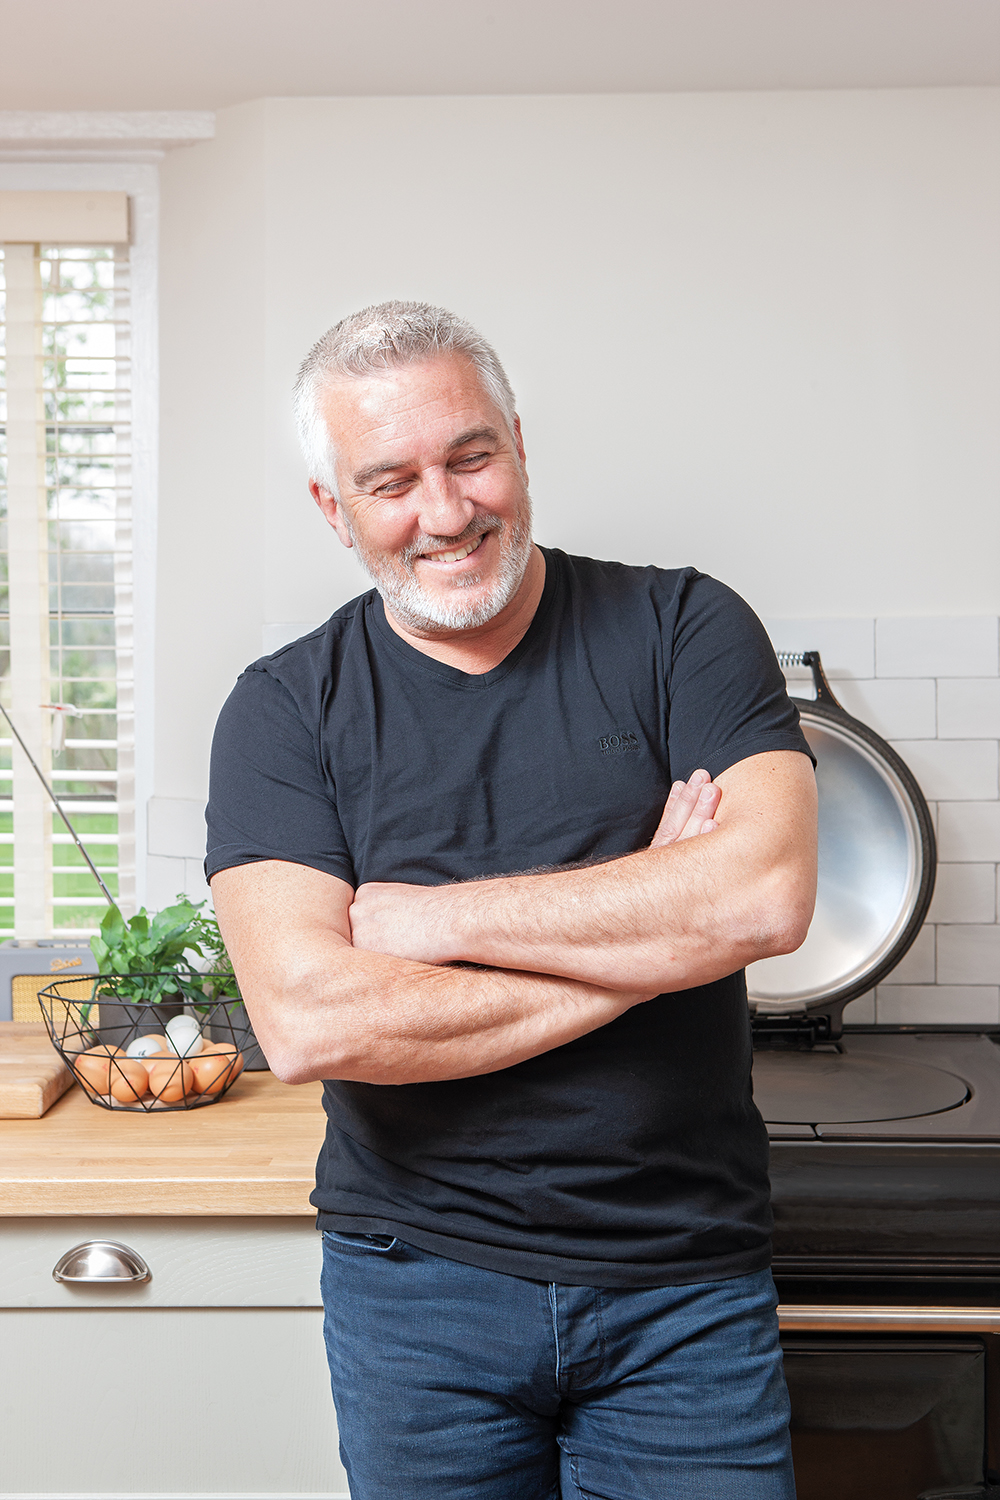 Paul Hollywood with his AGA eR3 Series cooker